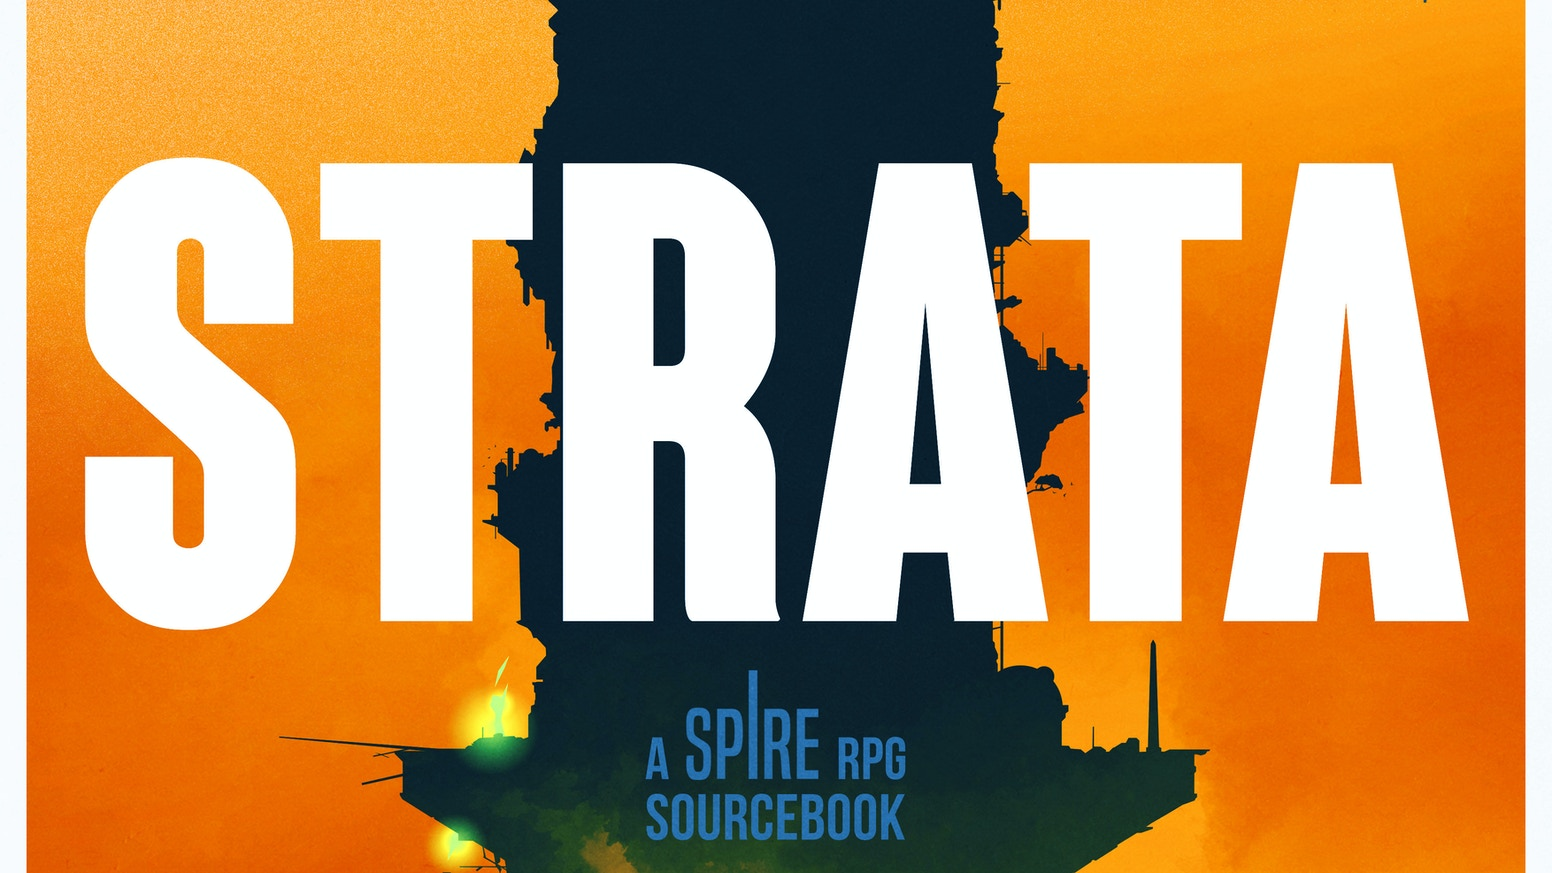 A full-colour hardback sourcebook for the Spire RPG.